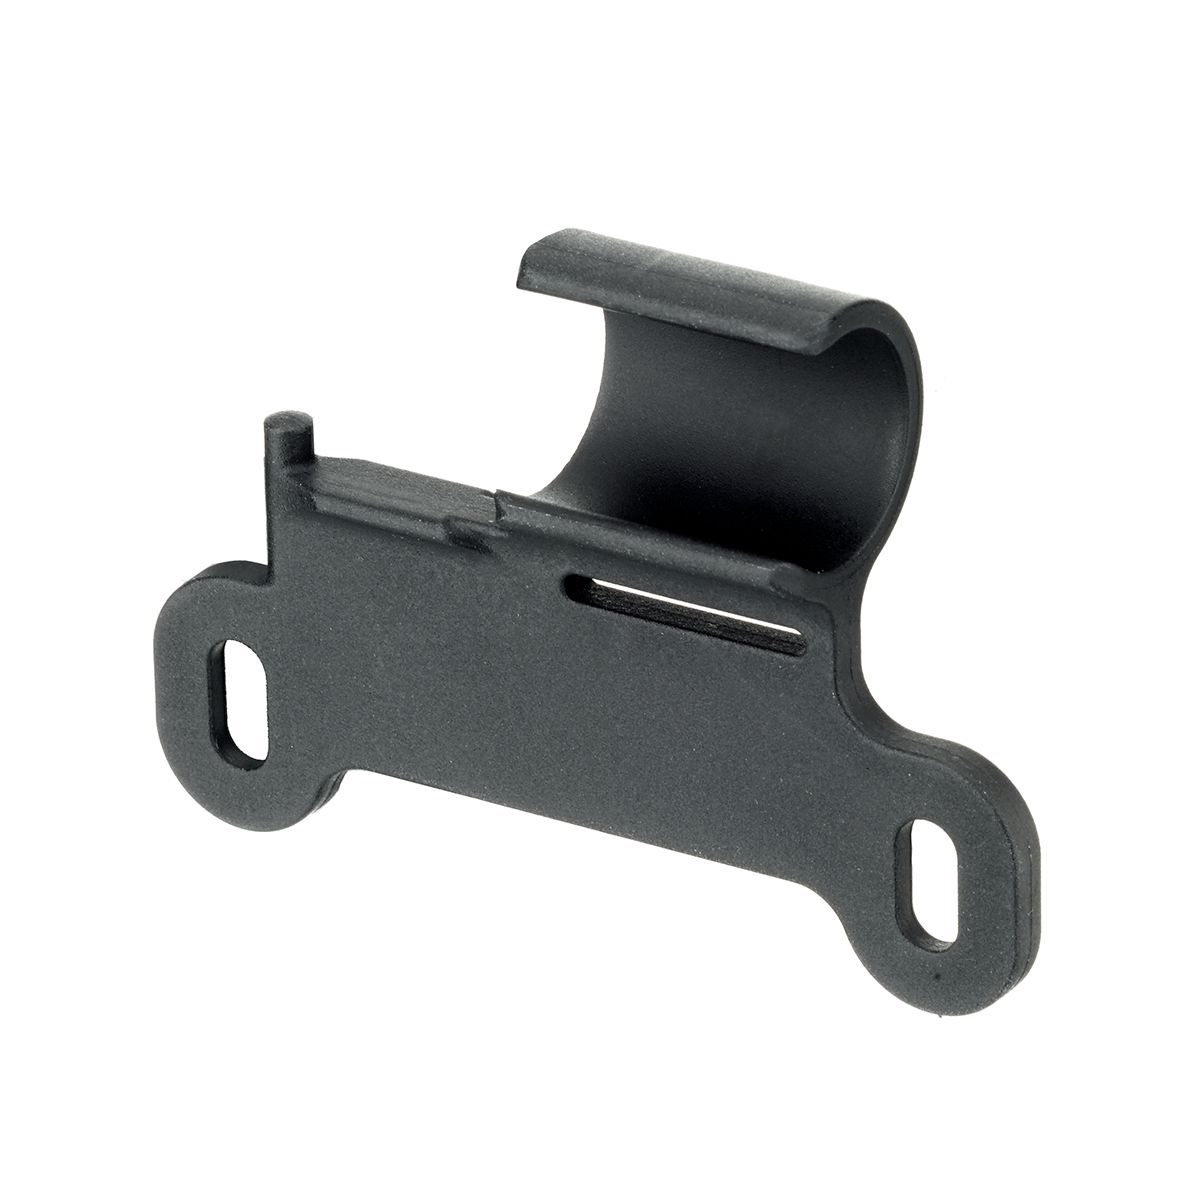 Spare bracket for Midi, Teleskop KS